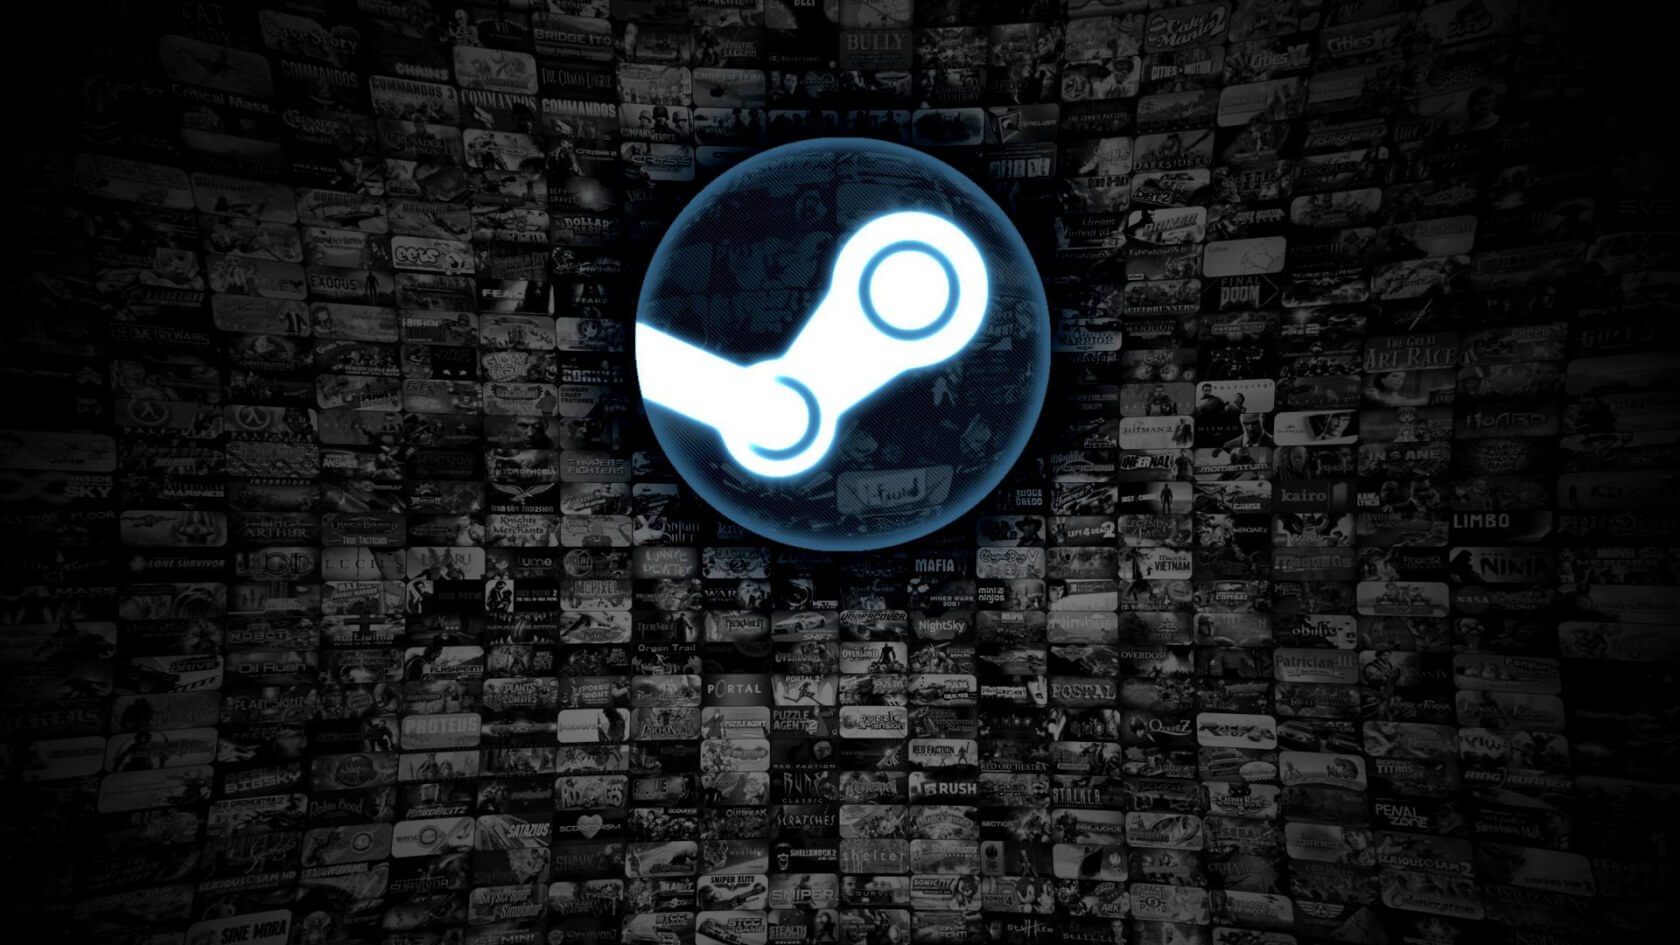 Steam Link Anywhere from Valve will allow you to play your games from anywhere